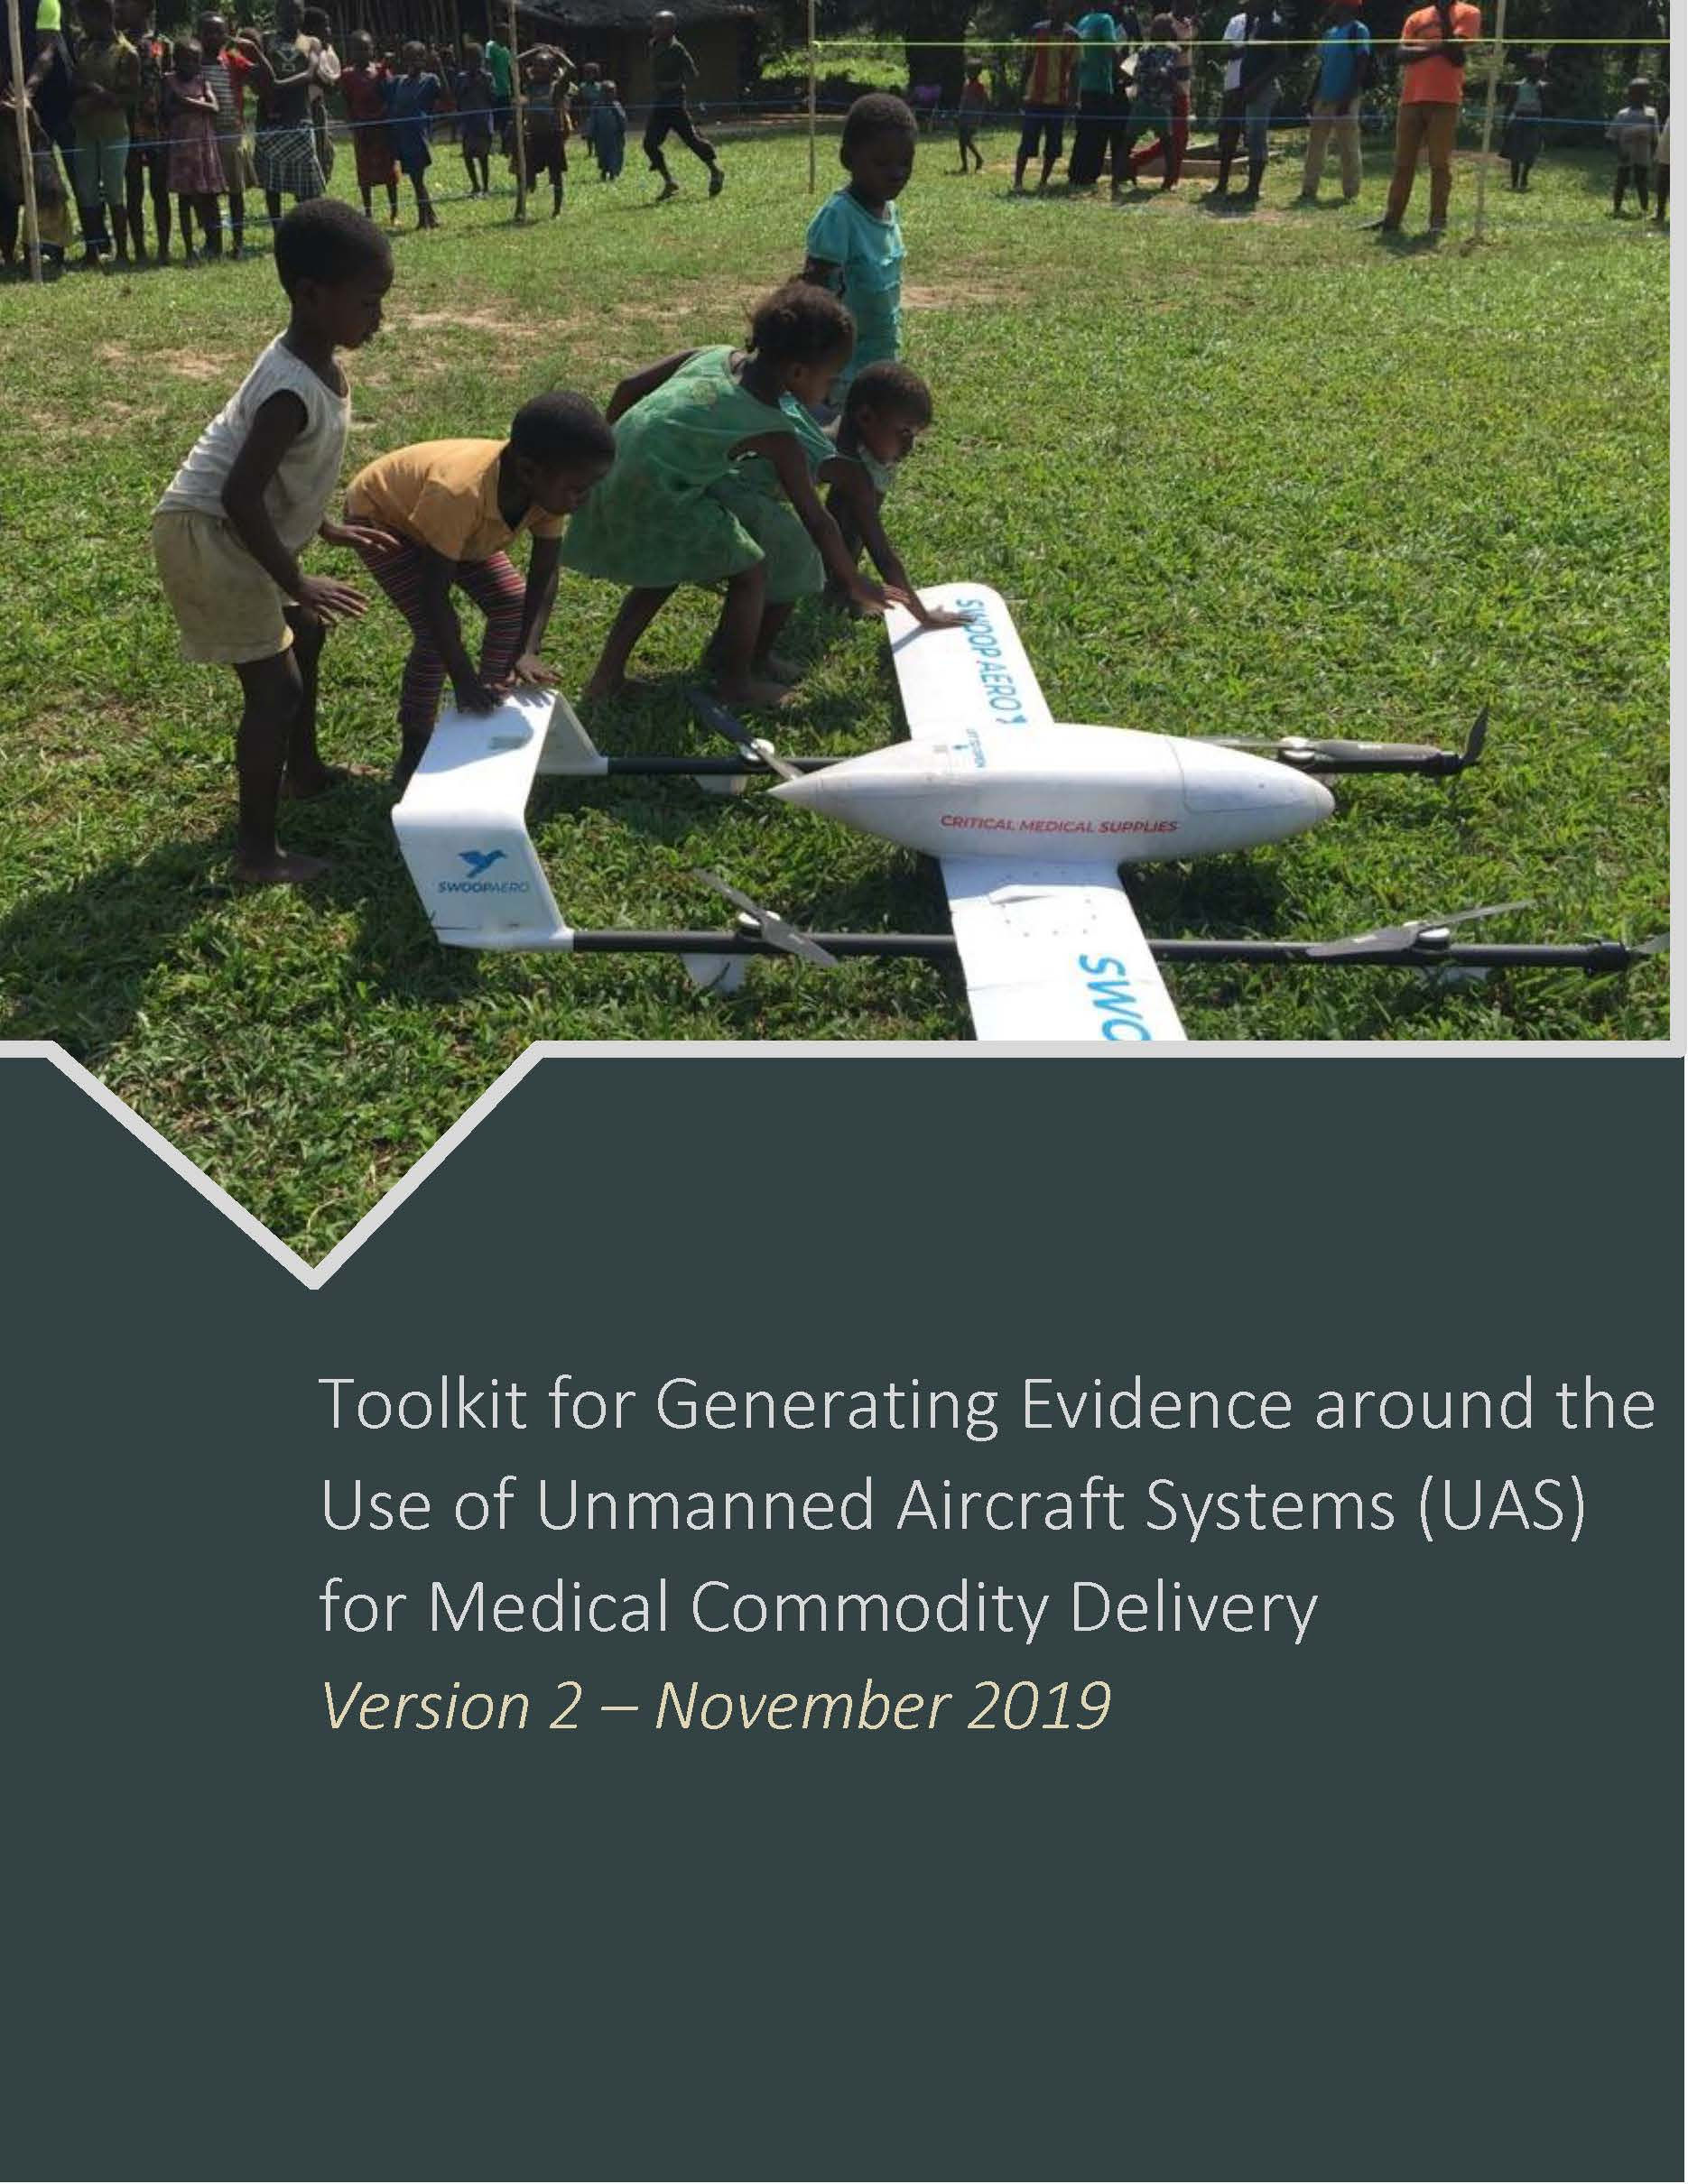 UAS Evidence Generation Toolkit - V2 - Nov 2019